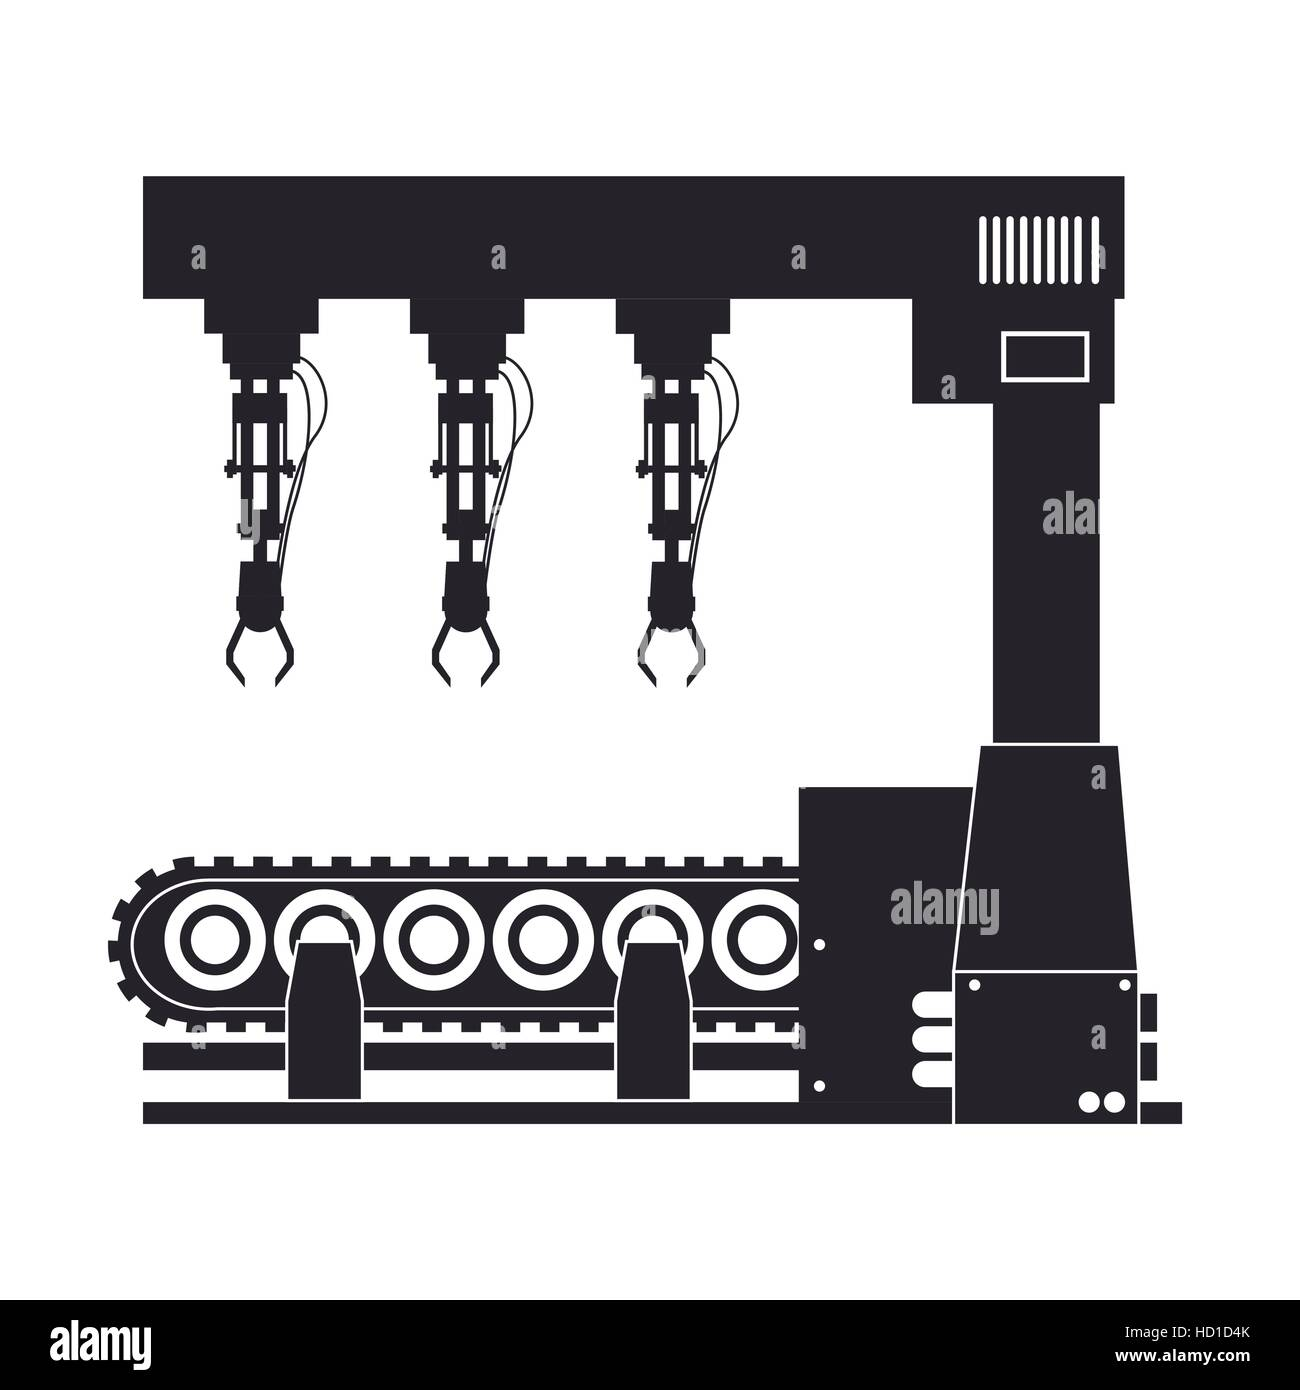 silhouette robotic production line machinery technology - Stock Image